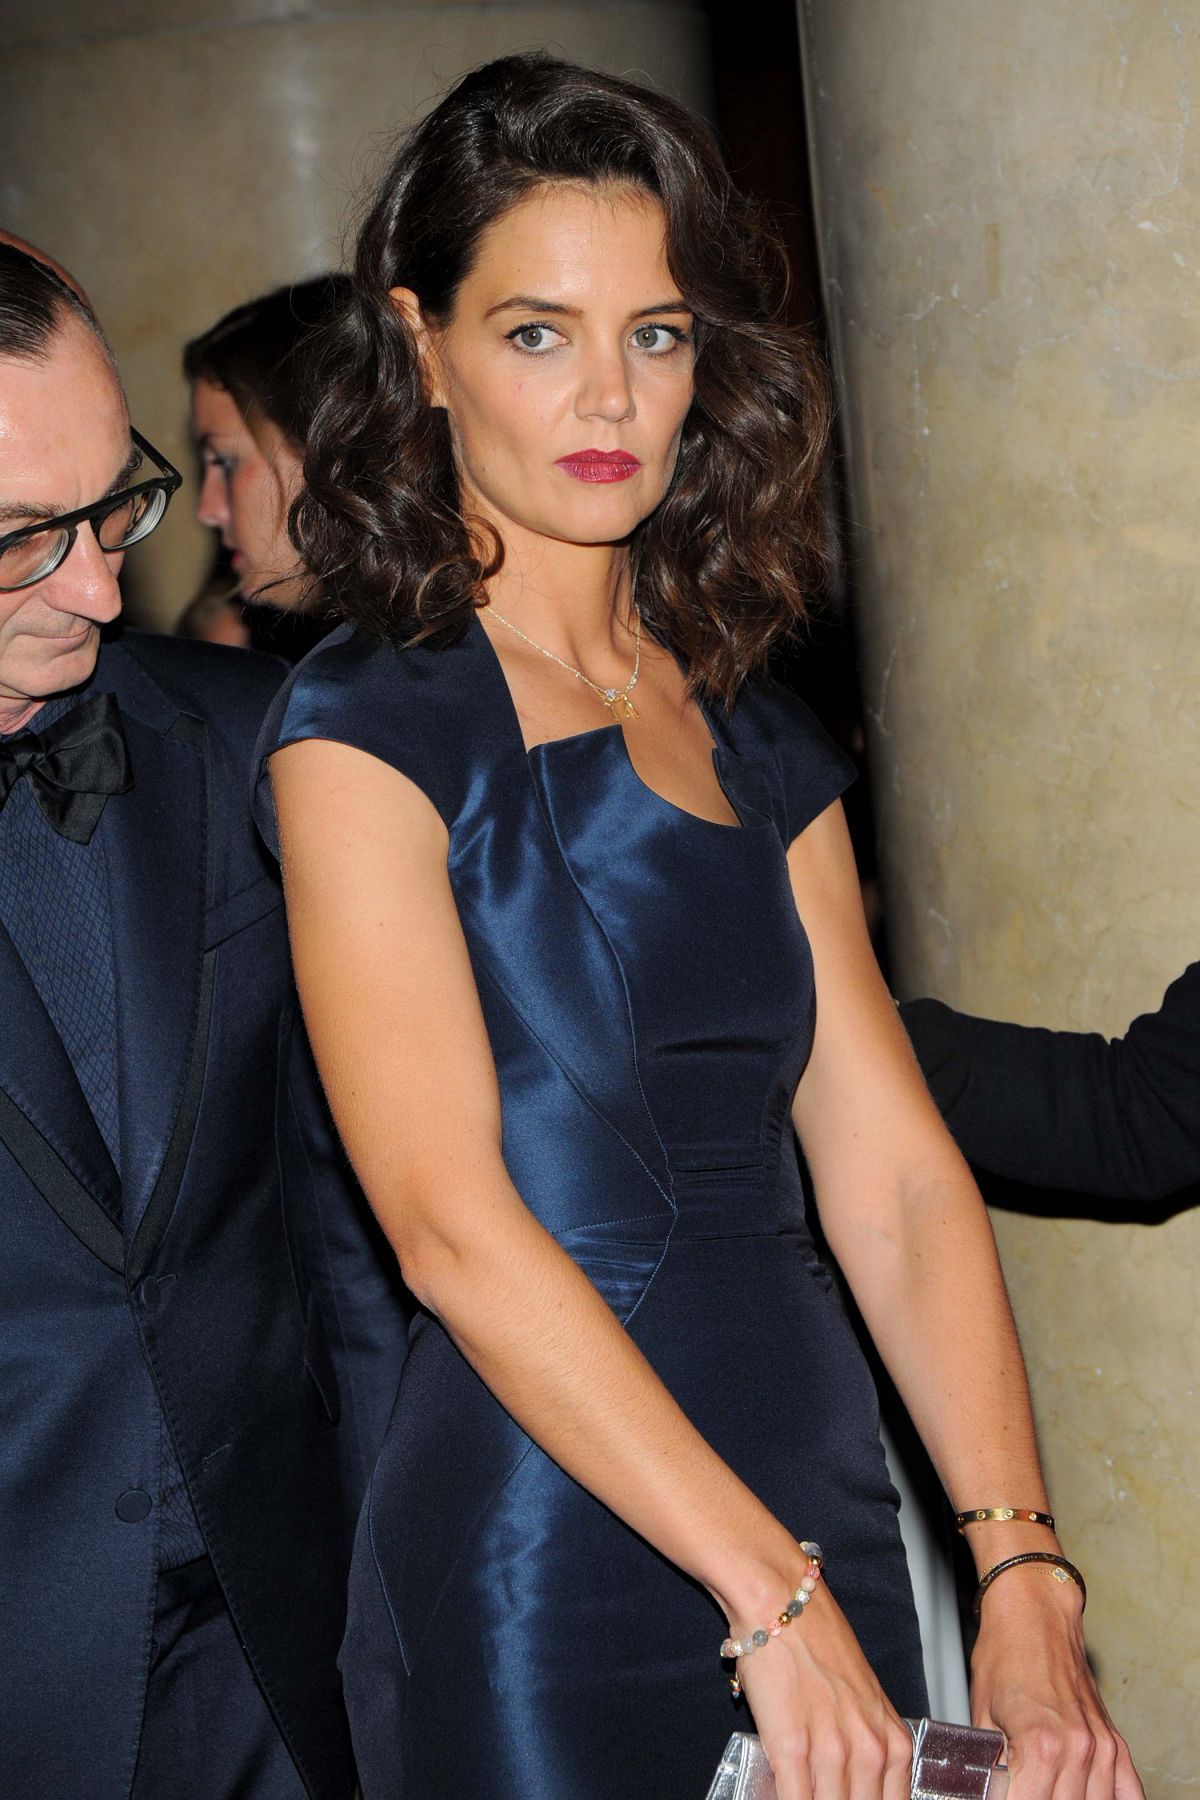 katie-holmes-at-2015-fashion-group-international-night-of-stars-gala-in-new-york-10-22-2015_2